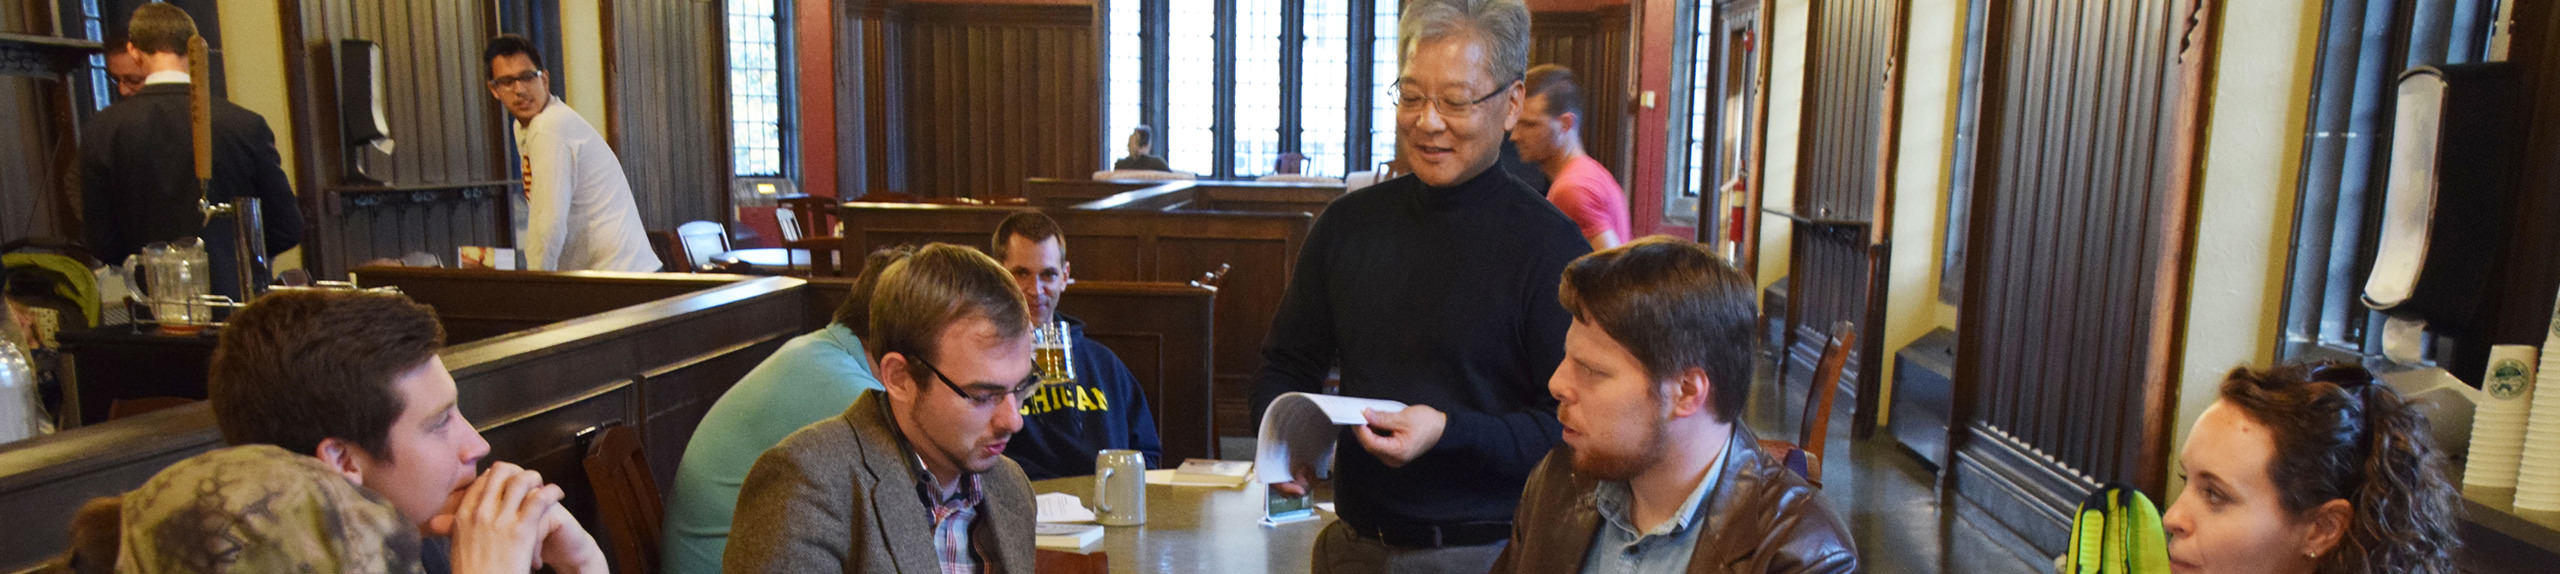 Campus Dining Services at Concordia Seminary